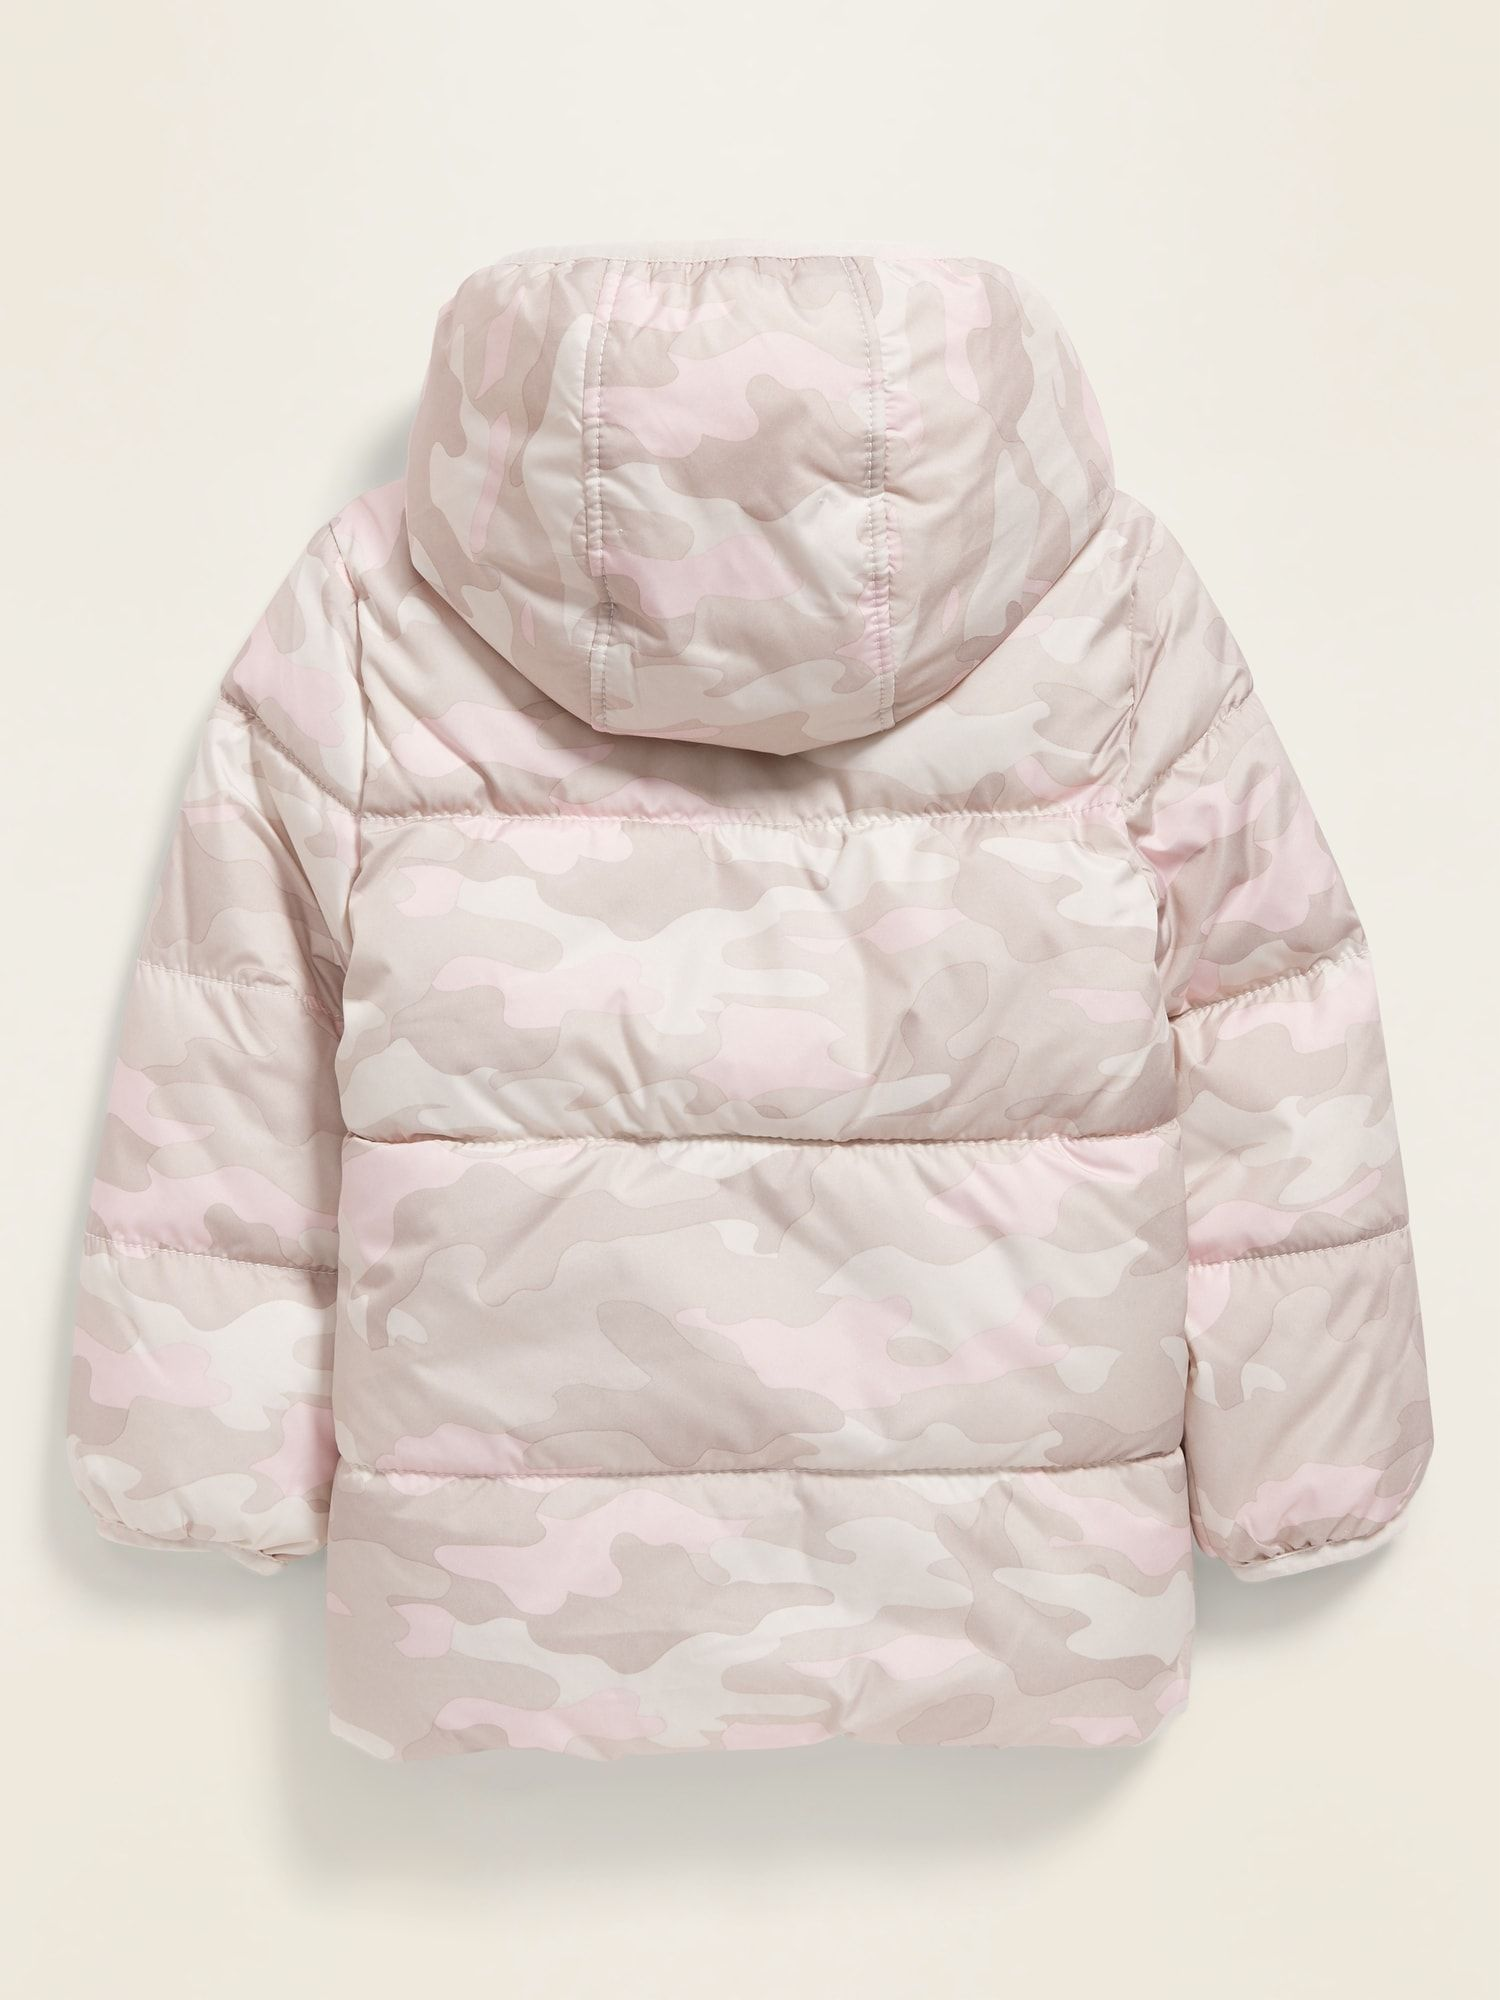 Old Navy Unisex Camo Print Frost Free Puffer Jacket For Toddler Pink Camo Size 18 24 M Puffer Camo Print Pink Camo [ 2000 x 1500 Pixel ]